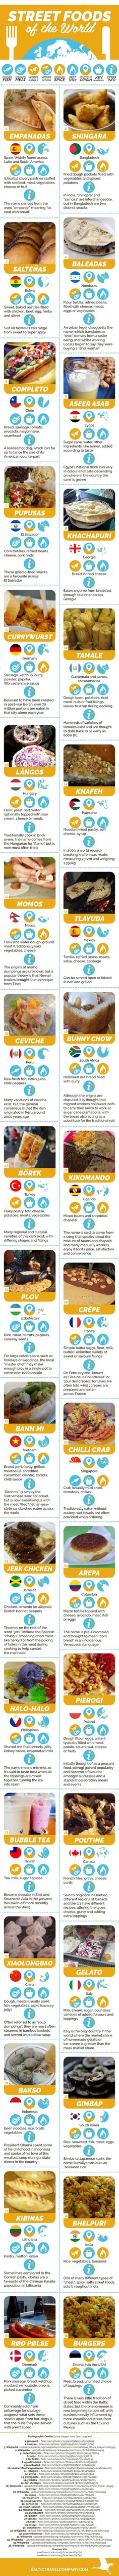 Street Foods of the World Infographic Travel Tips Tricks Hacks Advice Gadgets Itinerary City/Country Guide Bucket List Trips Wanderlust Family Vacation Holiday Break Honeymoon Nature History Explore Escape Getaway Adventure Foodie Lab, Best Street Food, Exotic Food, World Recipes, International Recipes, Foodie Travel, The Best, Good Food, At Least